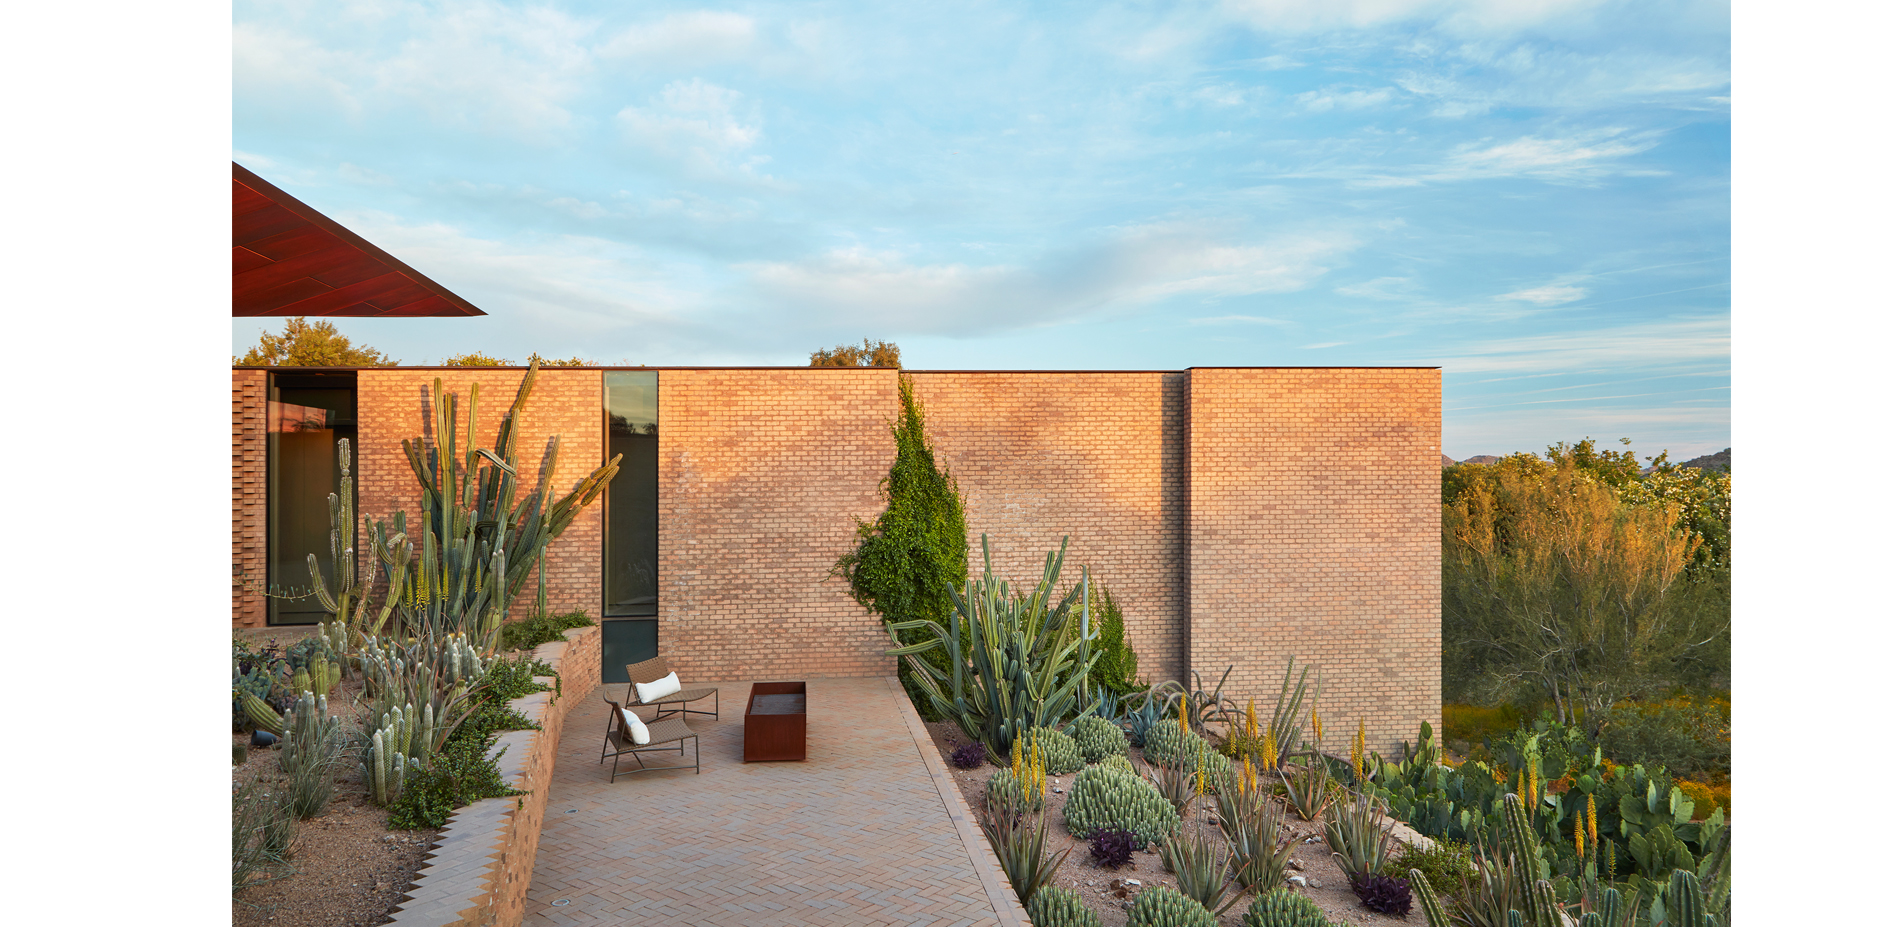 Terraced Planters and Patio